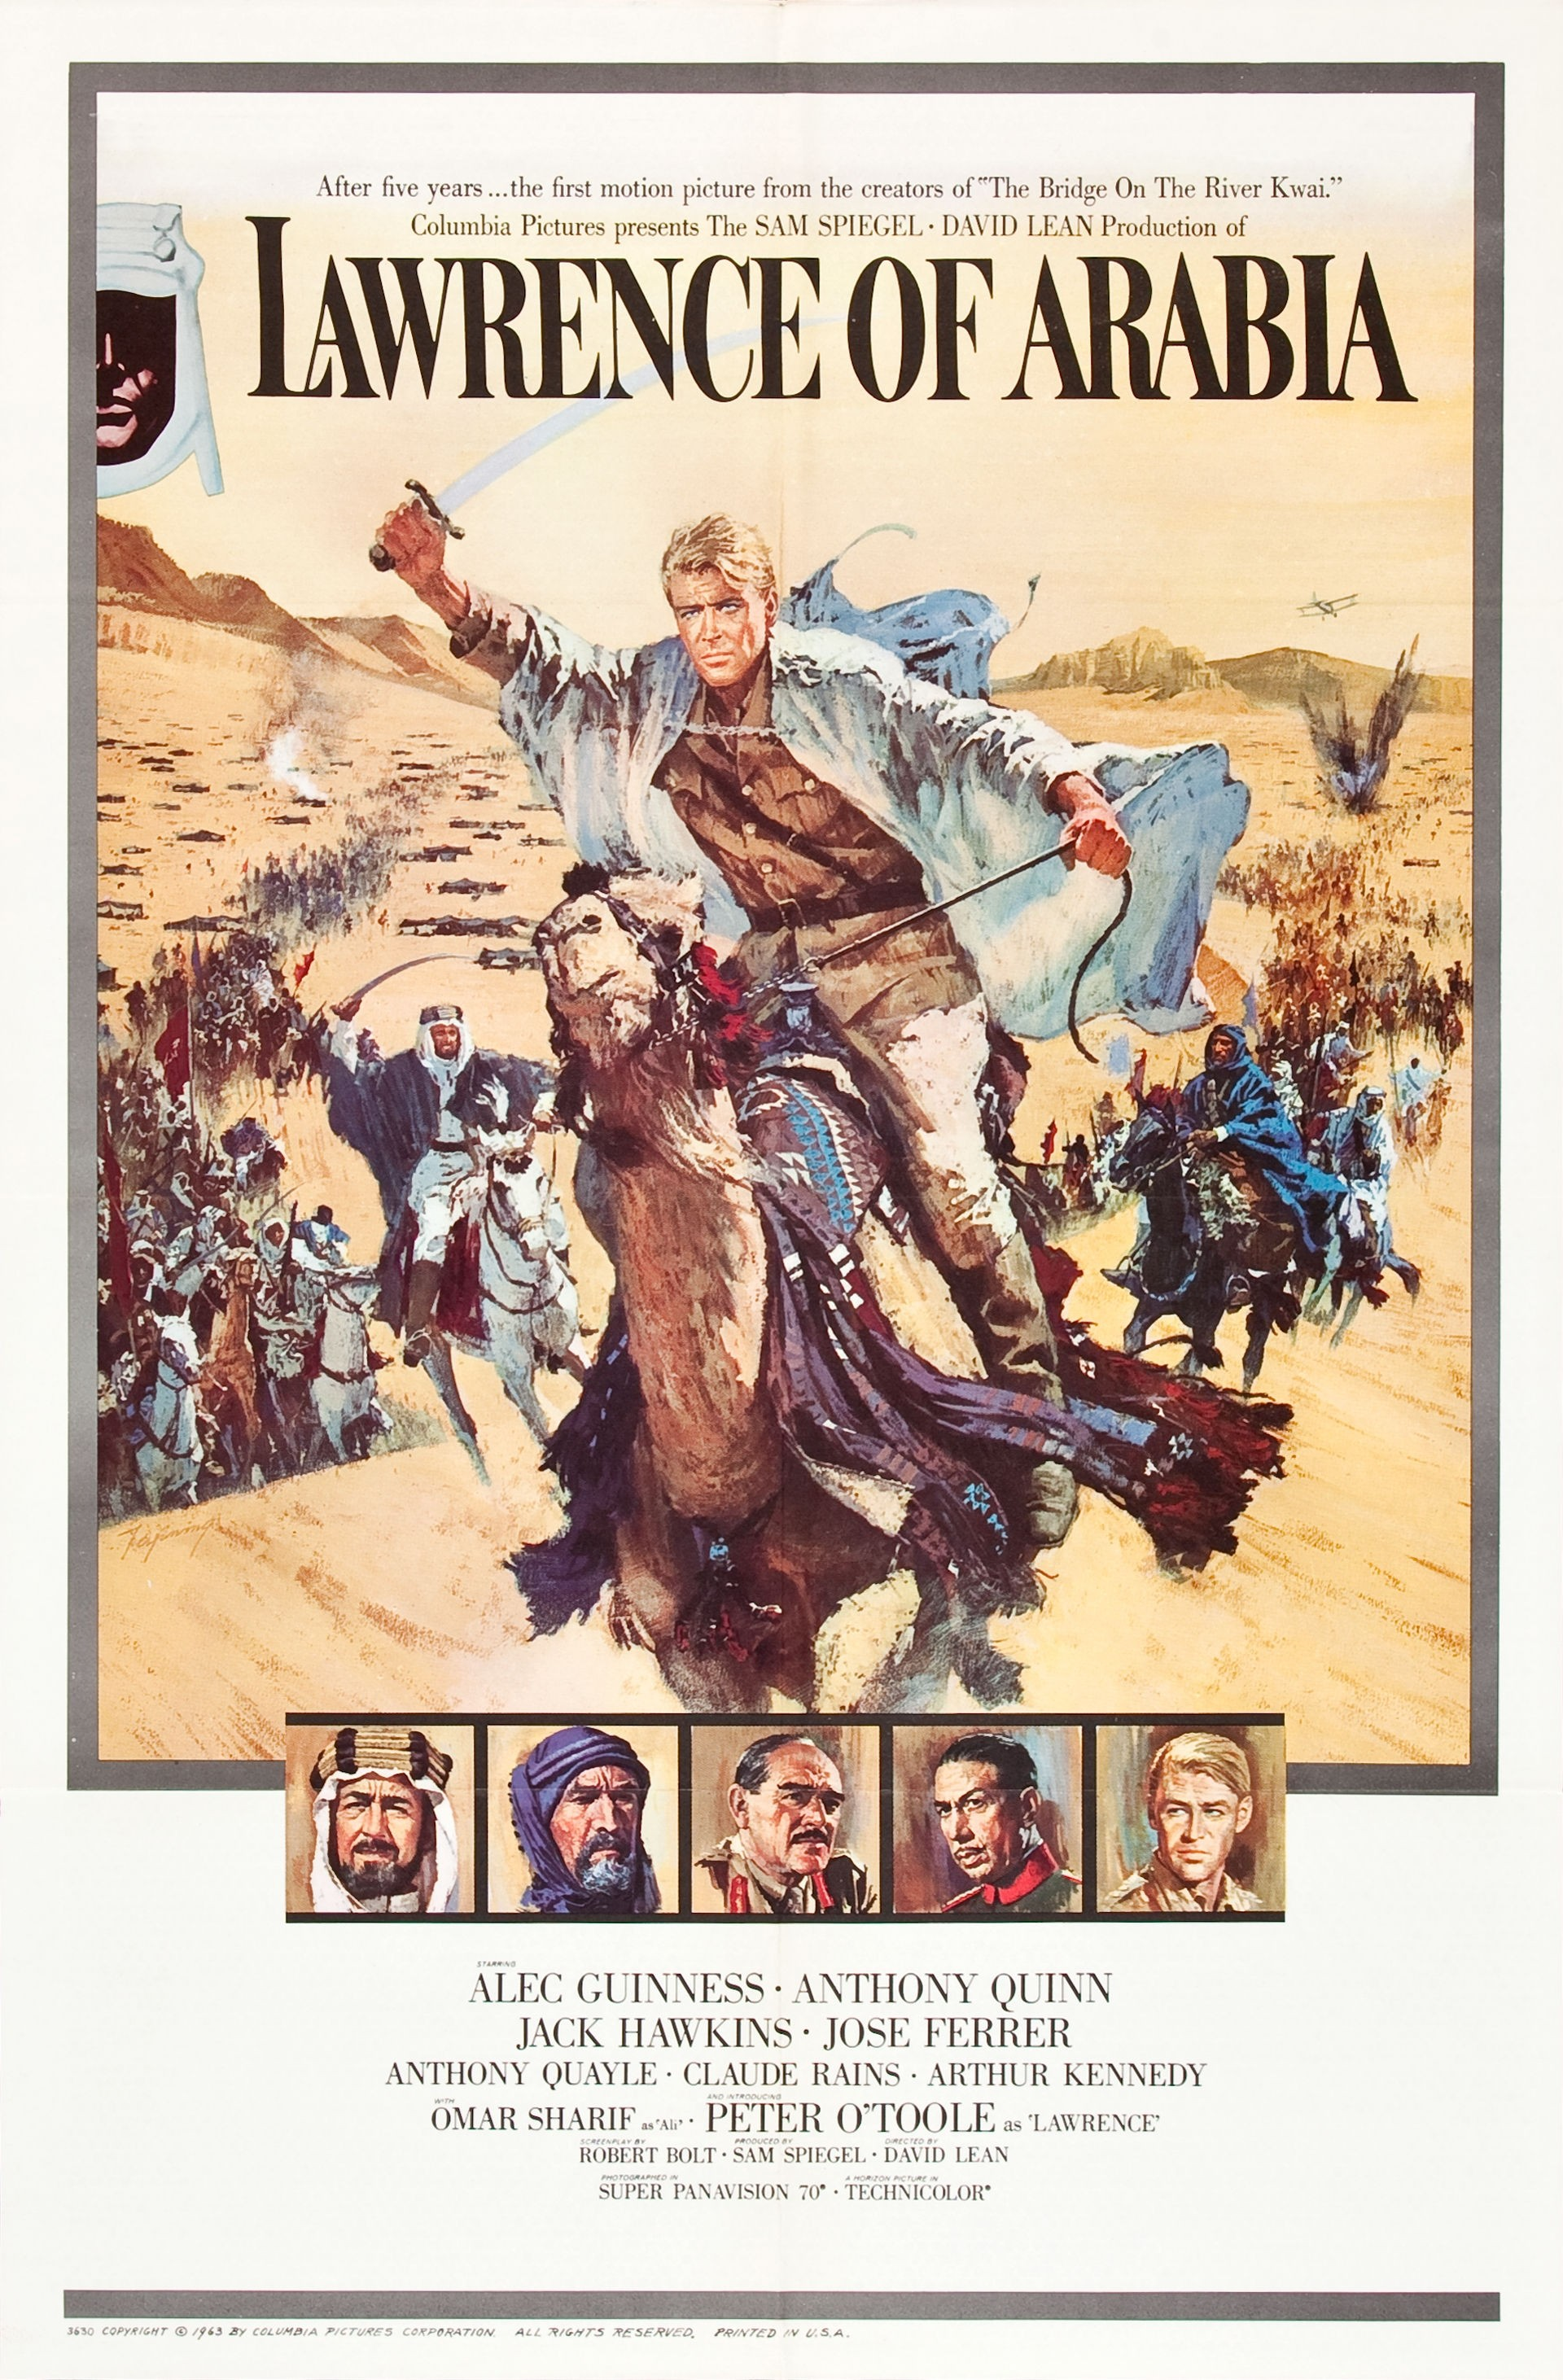 http://upload.wikimedia.org/wikipedia/commons/c/c5/Lawrence_of_arabia_ver3_xxlg.jpg